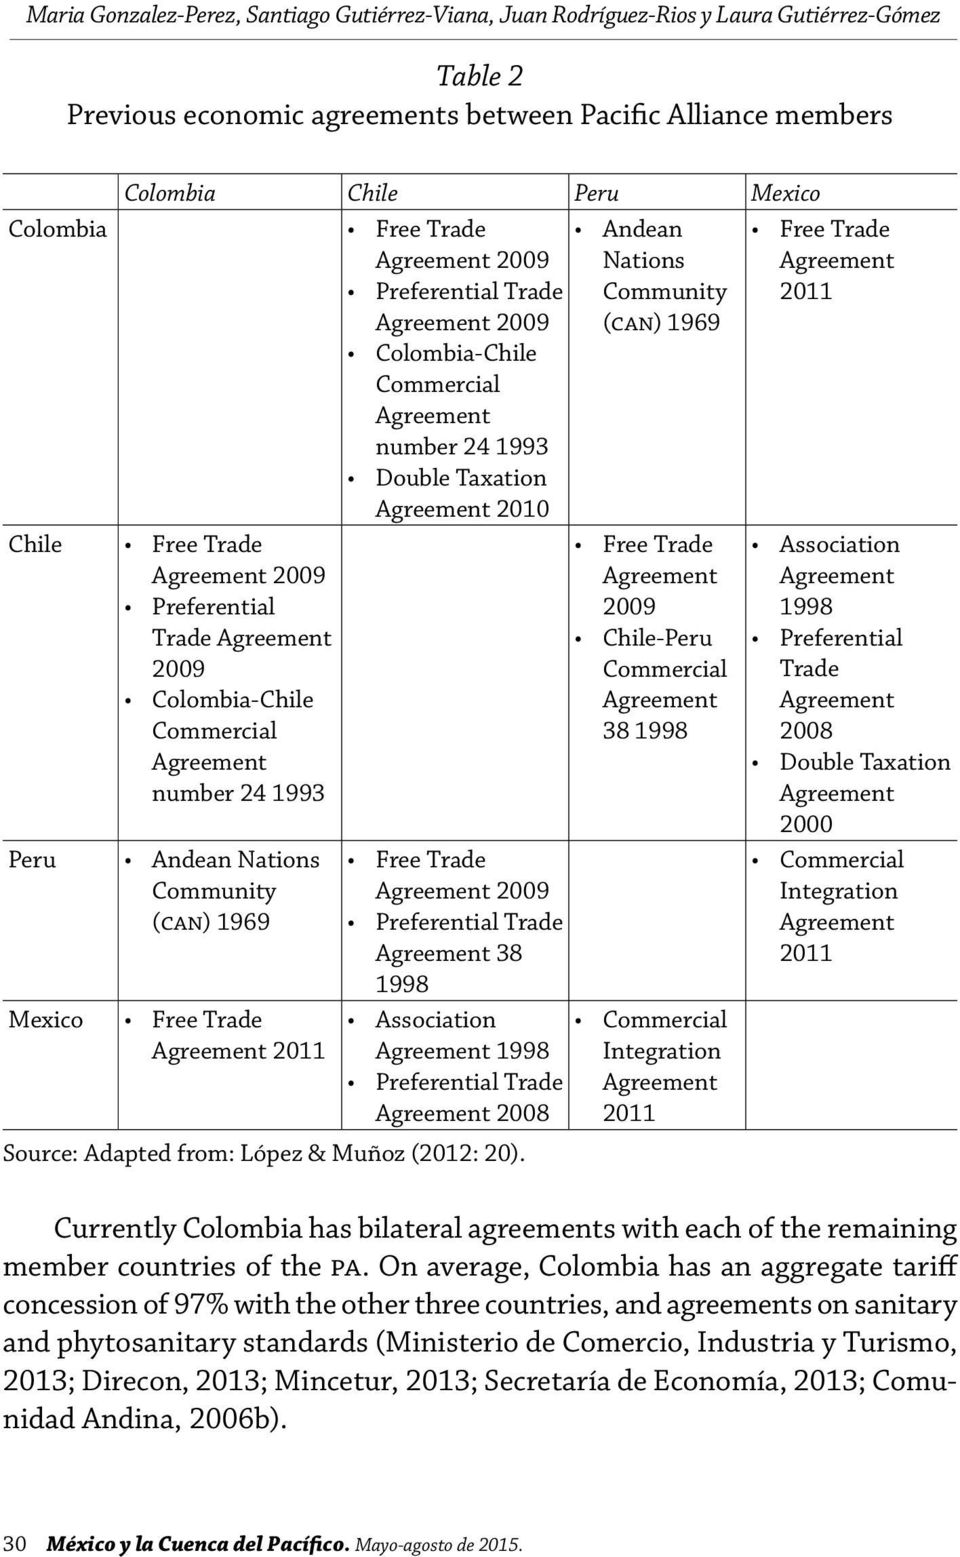 Trade Andean Agreement 2009 Nations Preferential Trade Community Agreement 2009 (can) 1969 Colombia-Chile Commercial Agreement number 24 1993 Double Taxation Agreement 2010 Free Trade Agreement 2009